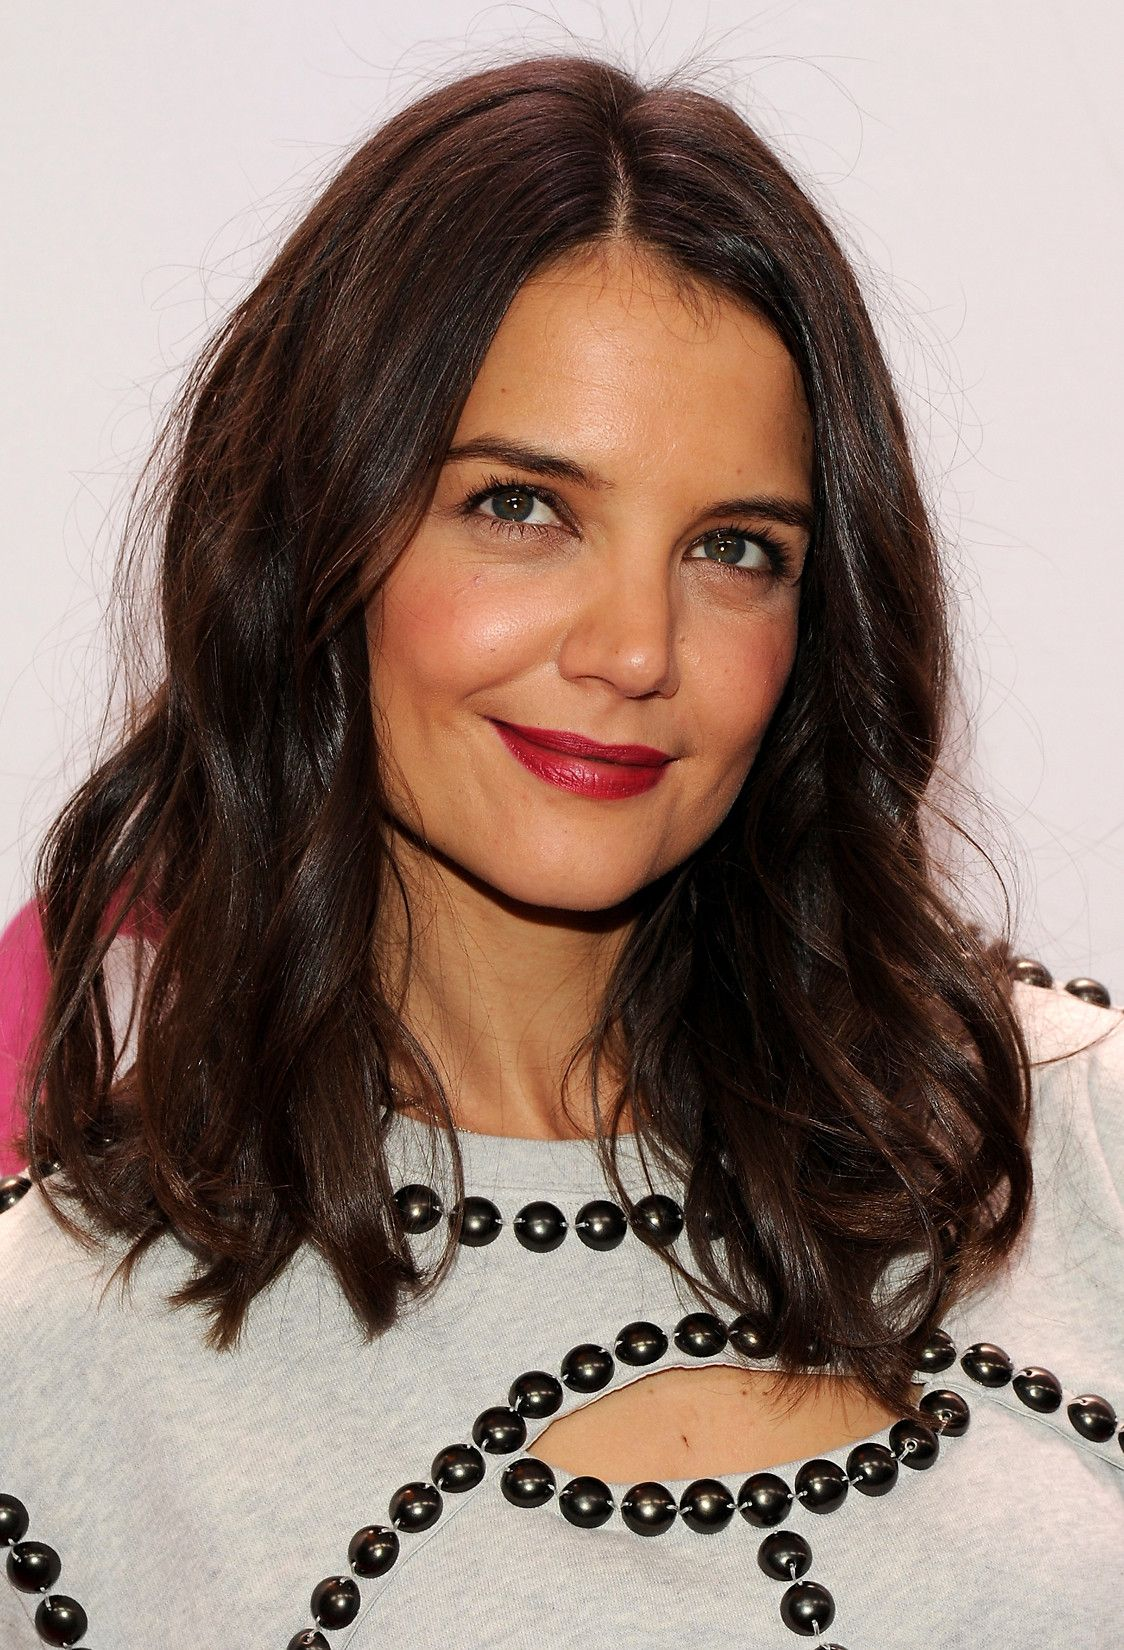 Katie Holmes Hairstyles Fair Katie Holmes Hair Love The Curls  Haircut  Pinterest  Katie